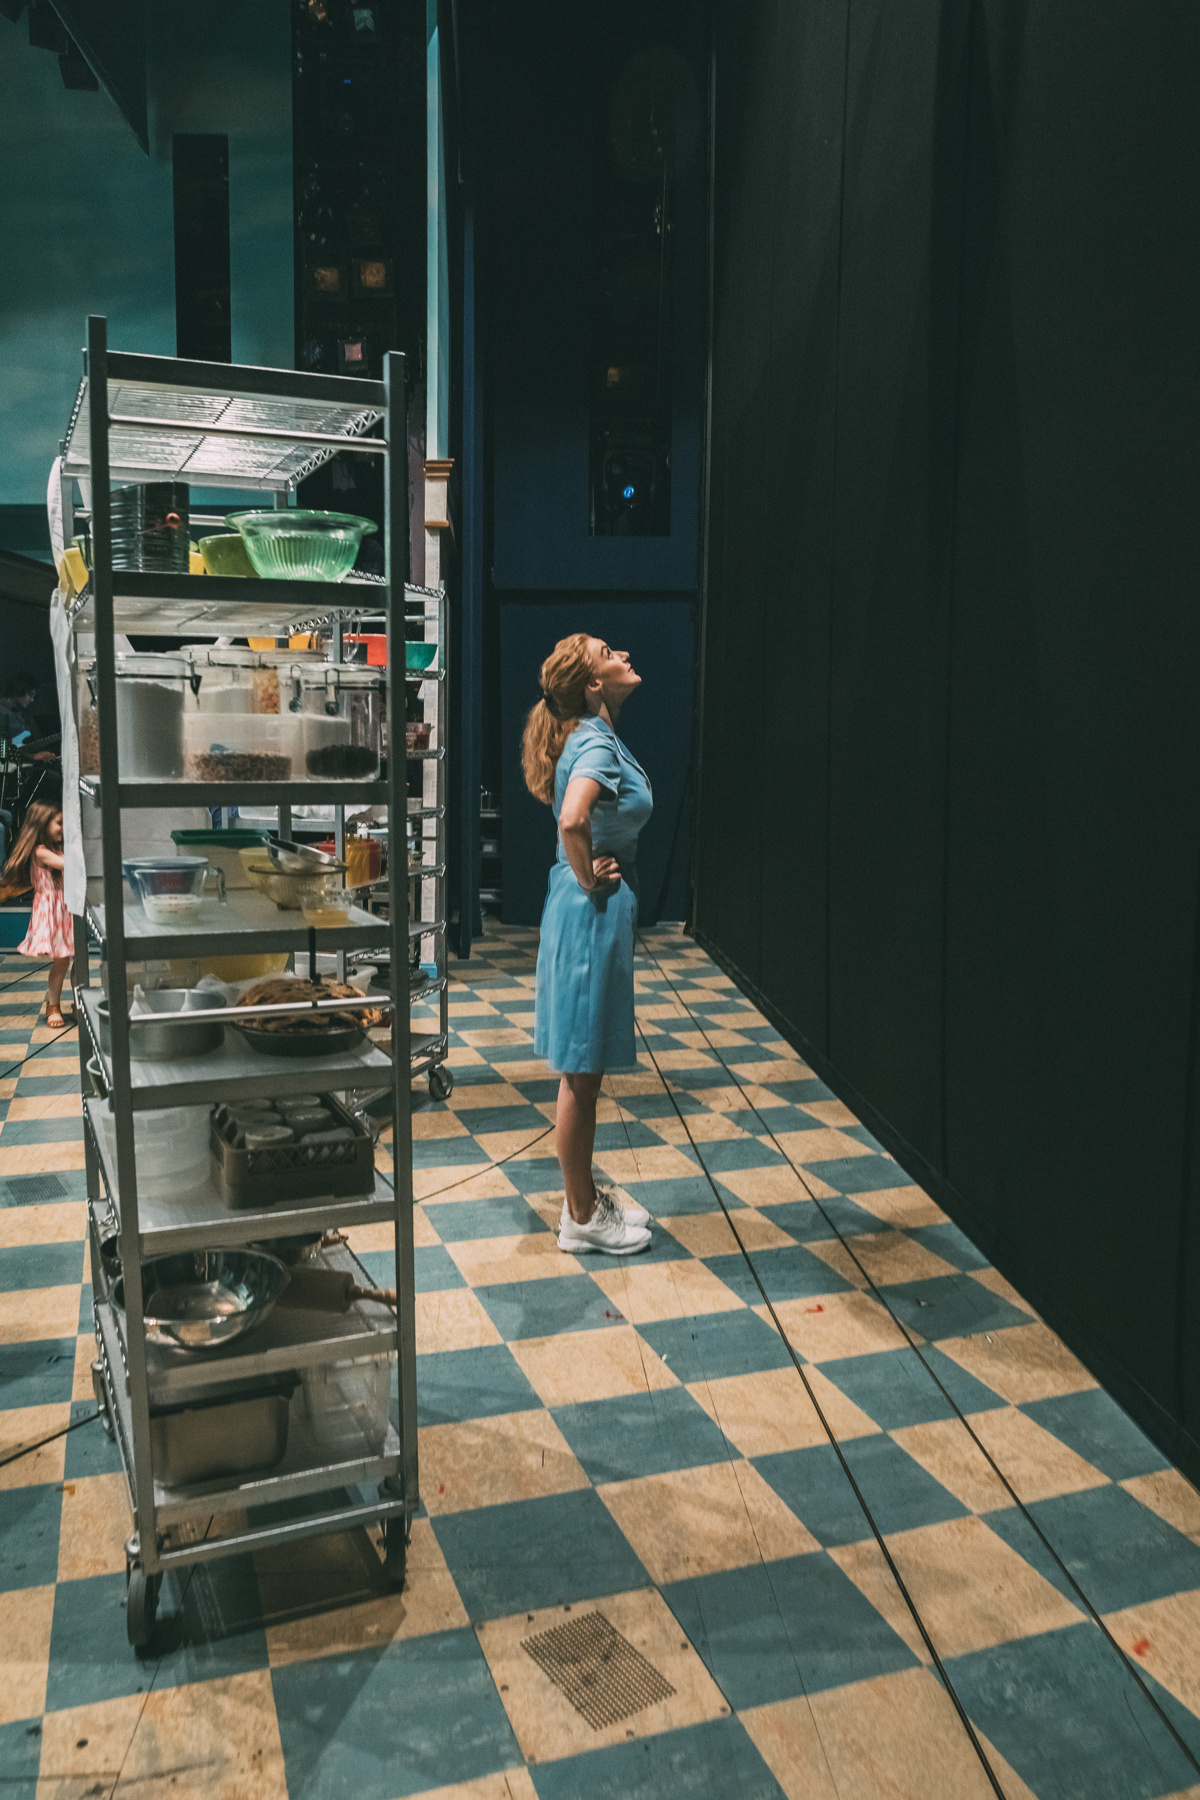 Betsy takes it all in before the curtain rises. © Broadway.com • Production photos by Caitlin McNaney